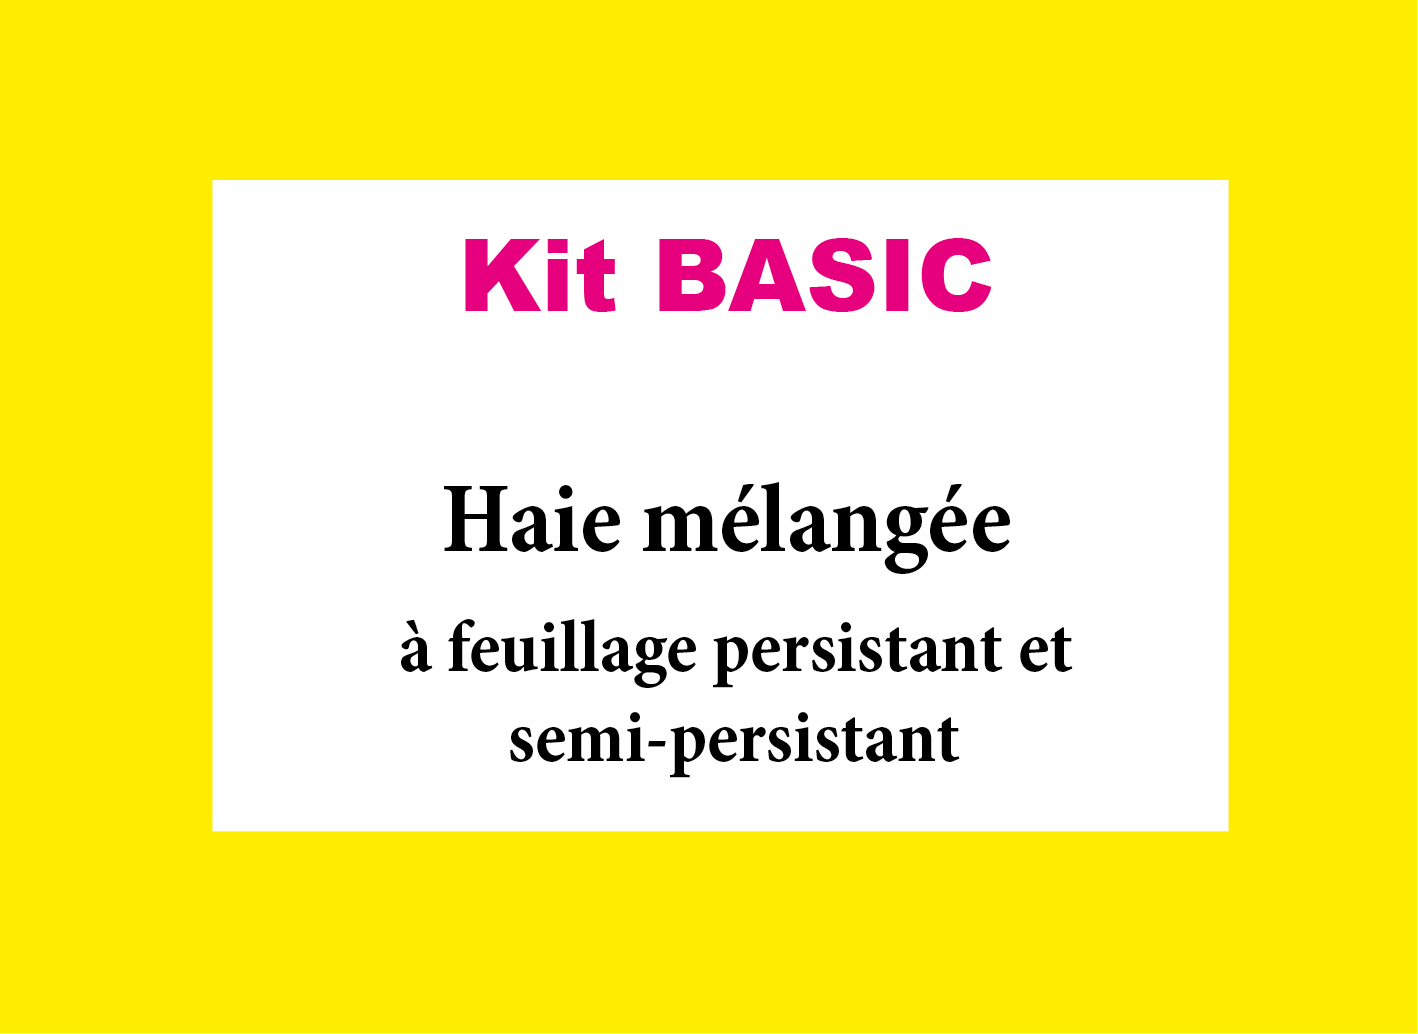 Kit basic haie m lang e feuillage persistant ou semi - Haie feuillage persistant ...